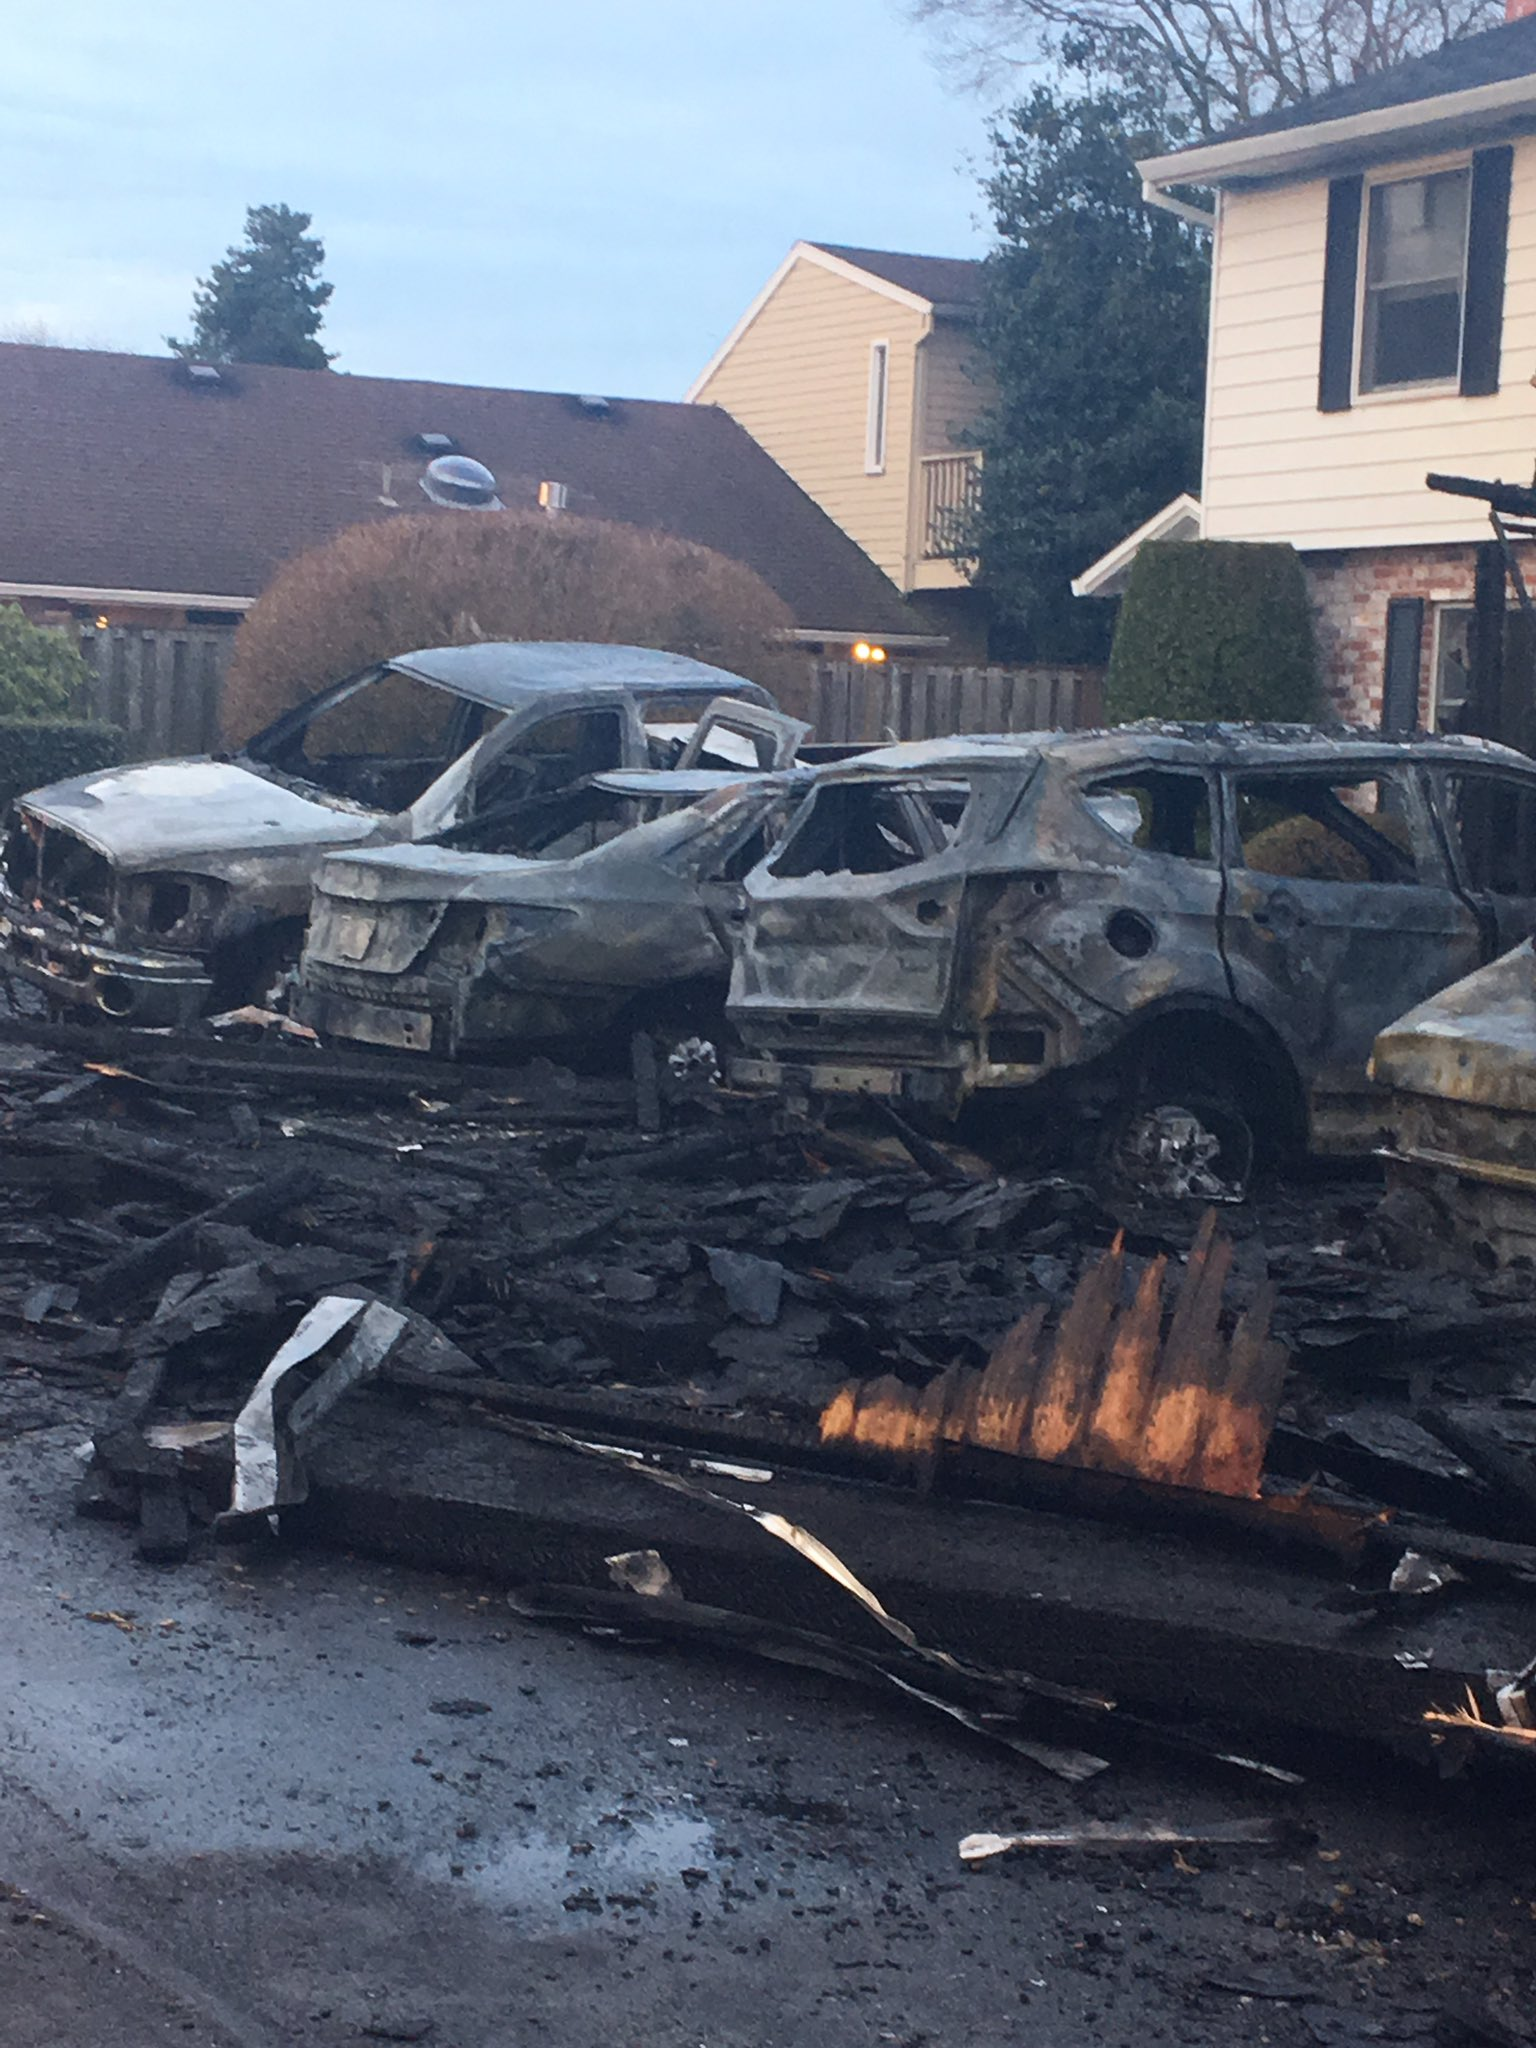 A fire at a carport at a Beaverton apartment complex destroyed six vehicles on Feb. 22, 2019. Photo by Jackie Labrecque{ }